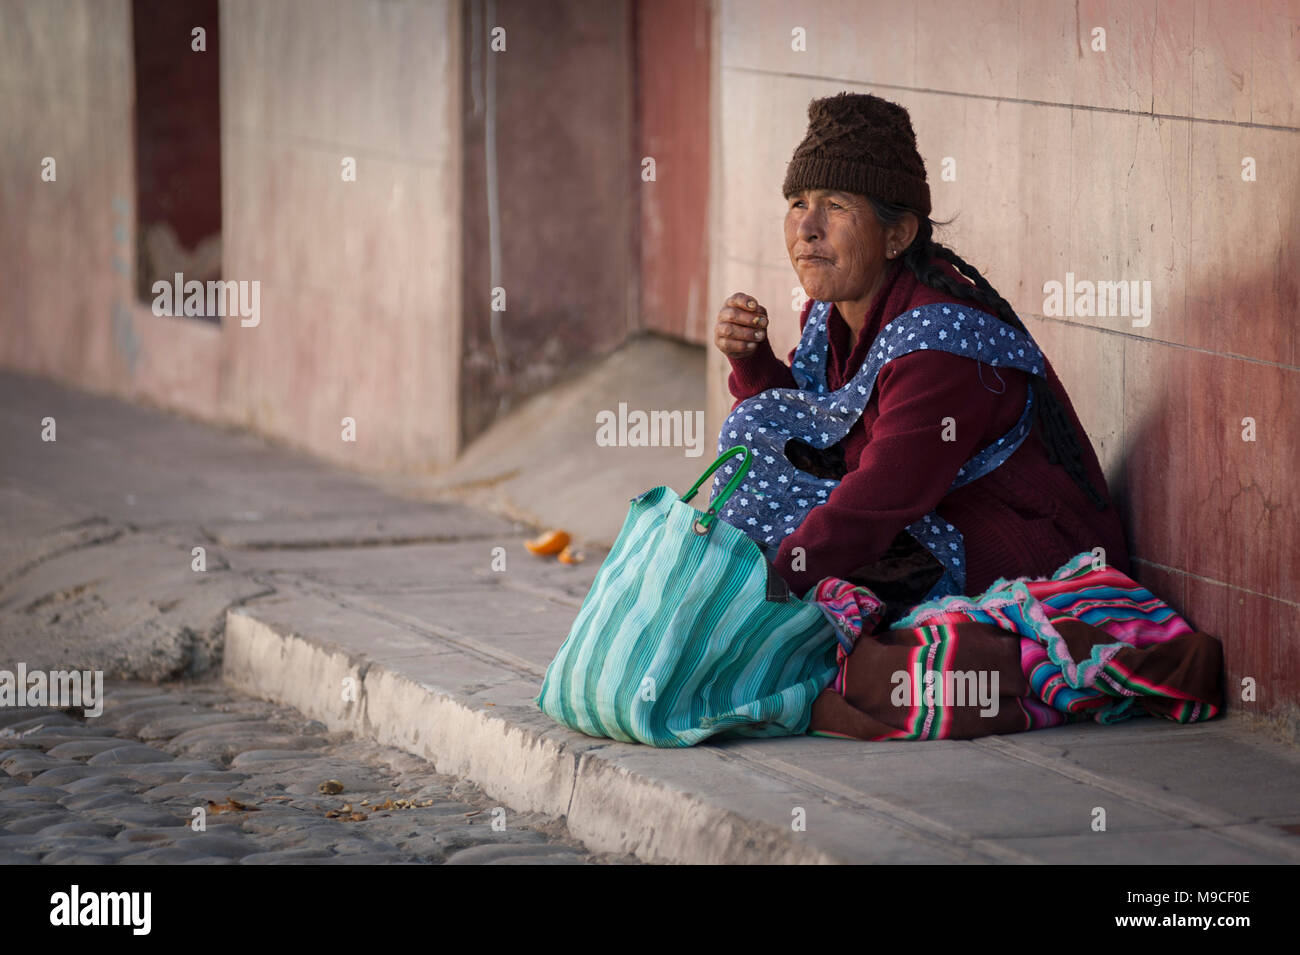 Unidentified indigenous native Quechua woman with traditional tribal clothing and hat, at the local Tarabuco Sunday Market, Bolivia - South America - Stock Image